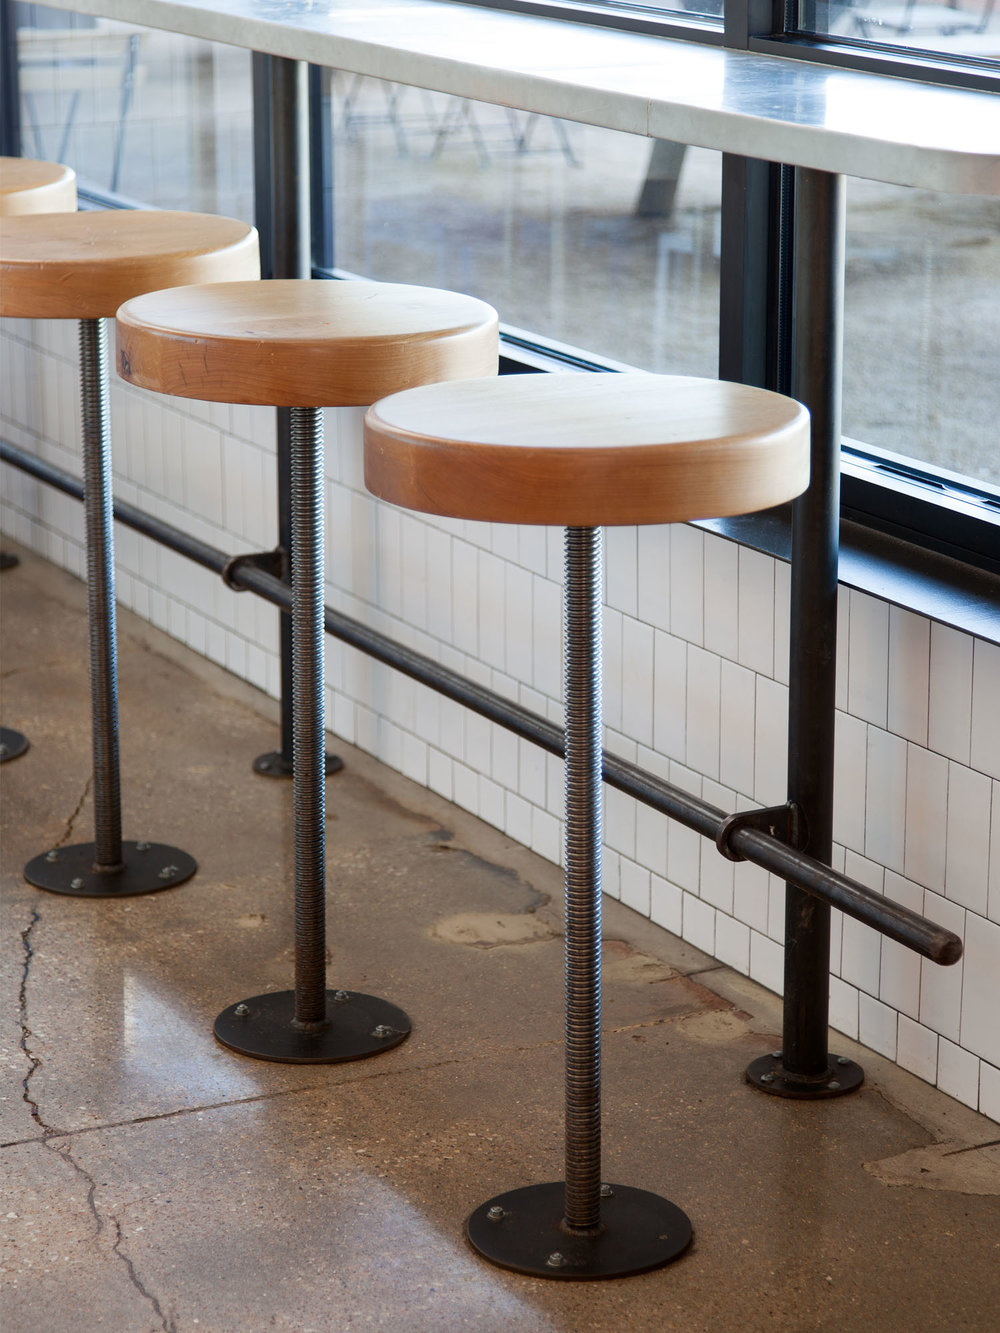 McCray & Co. - St. Philip - Custom Bake Shop Stools